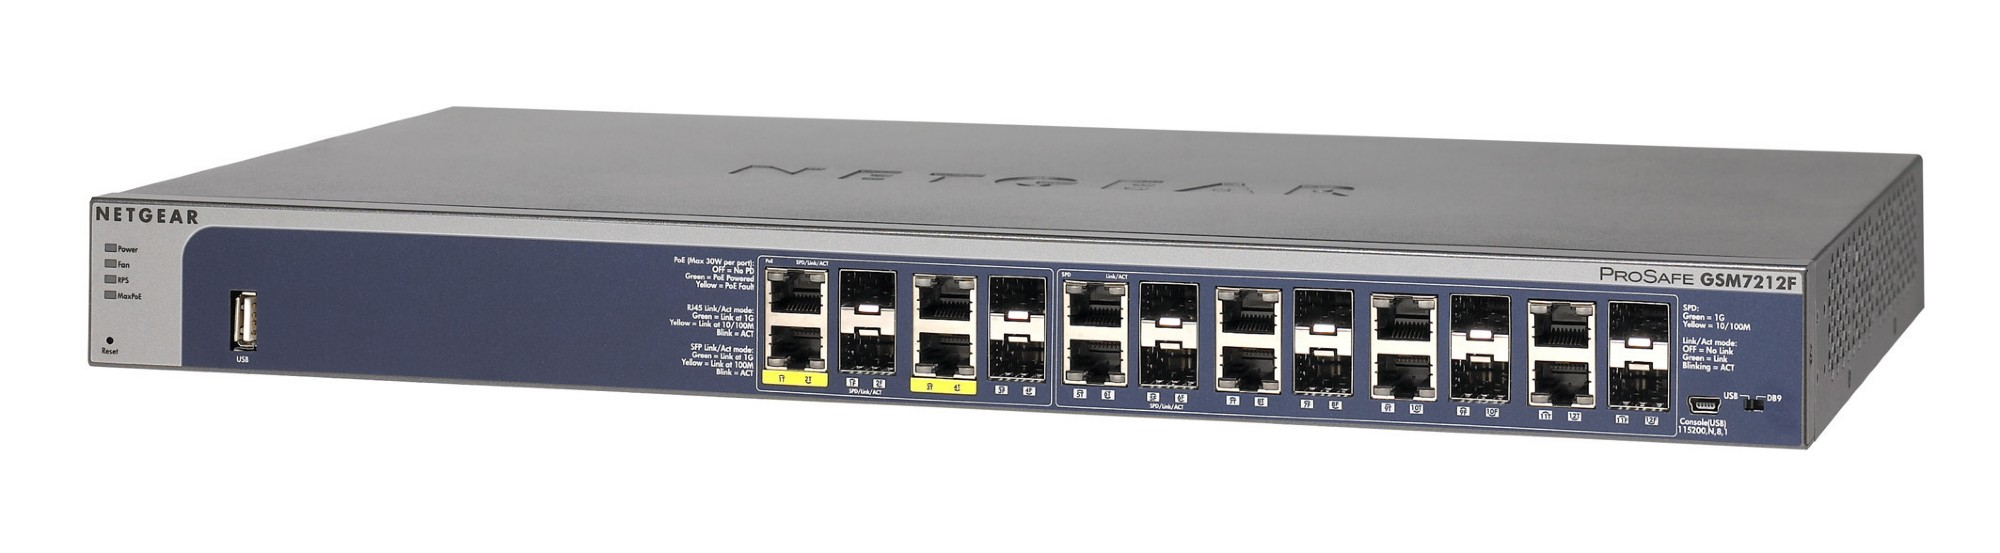 NETGEAR PROSAFE GSM7212F MANAGED NETWORK SWITCH L2+ POWER OVER ETHERNET (POE) GREY